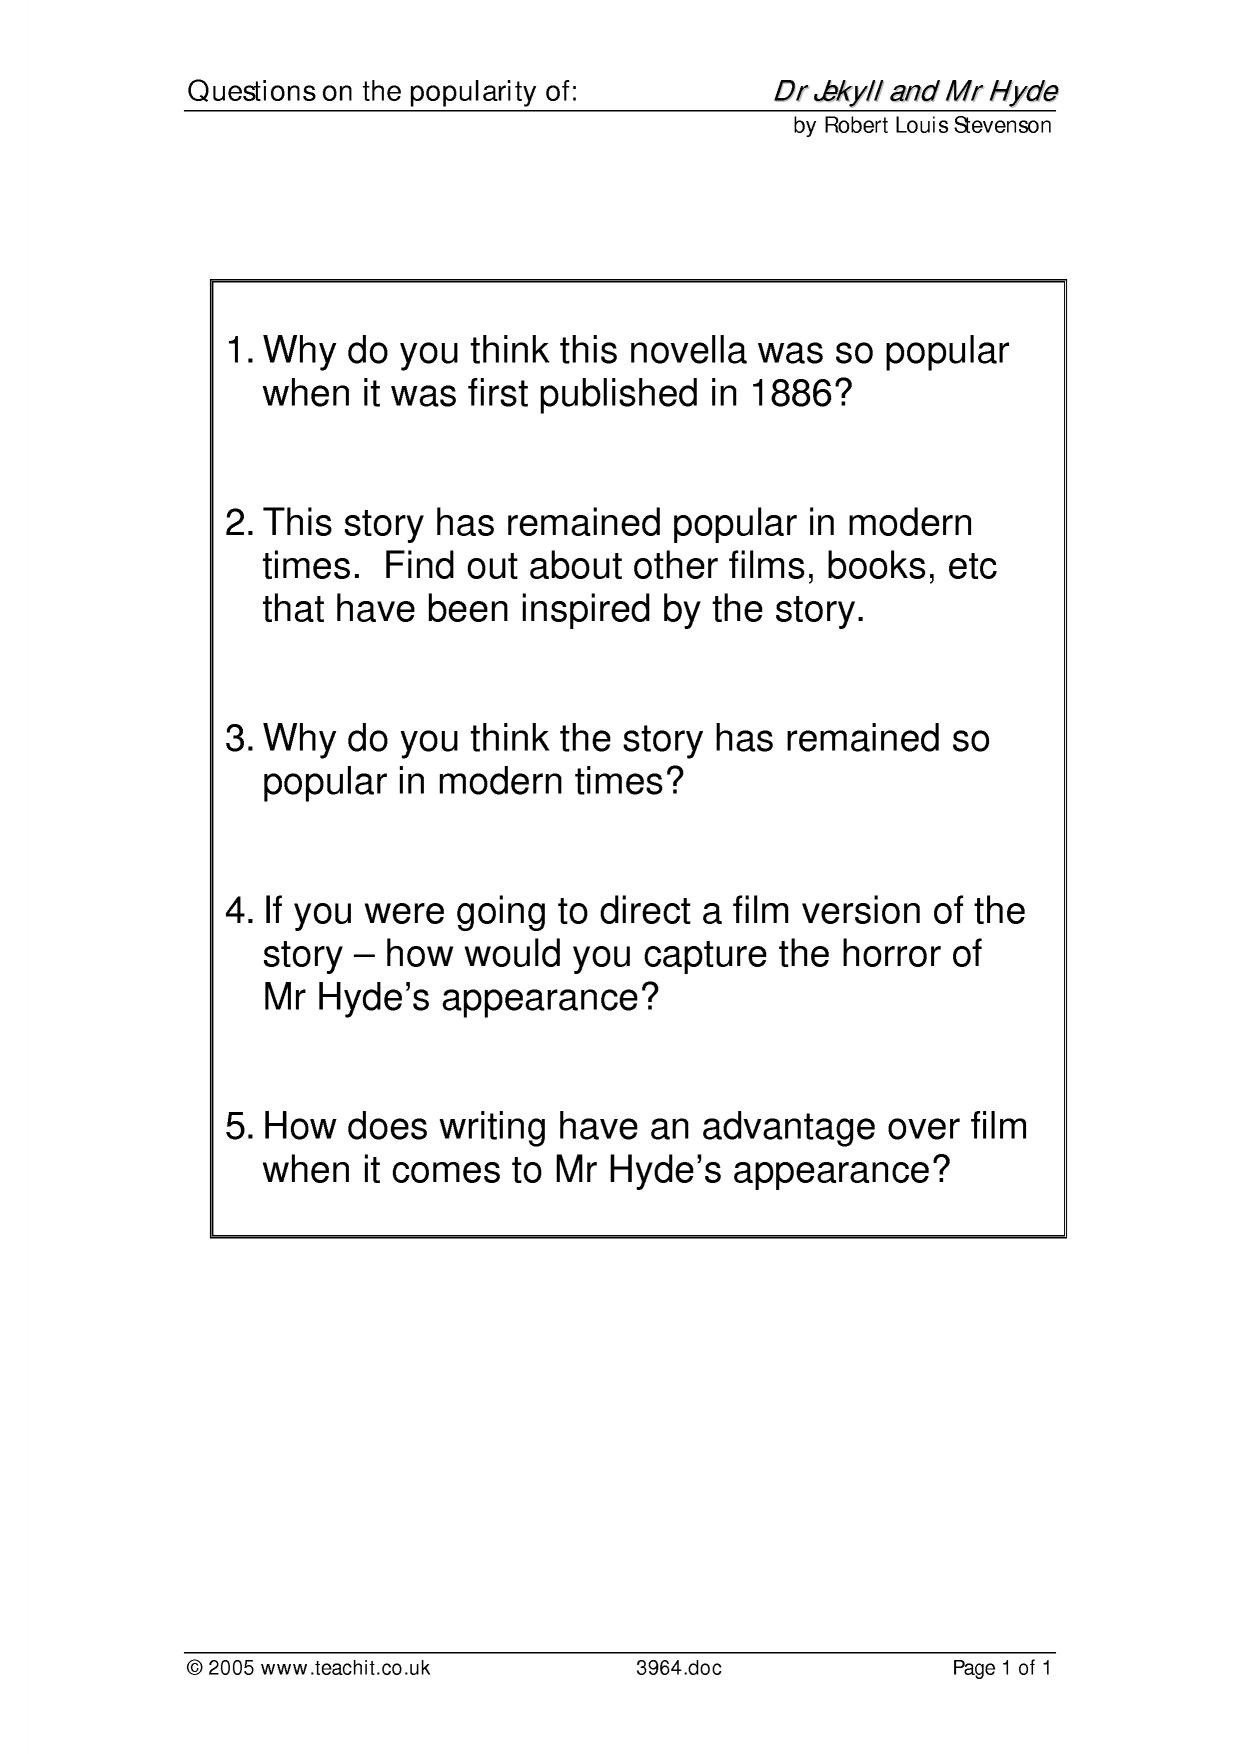 dr jekyll and mr hyde essay questions  dr jekyll and mr hyde essay questions